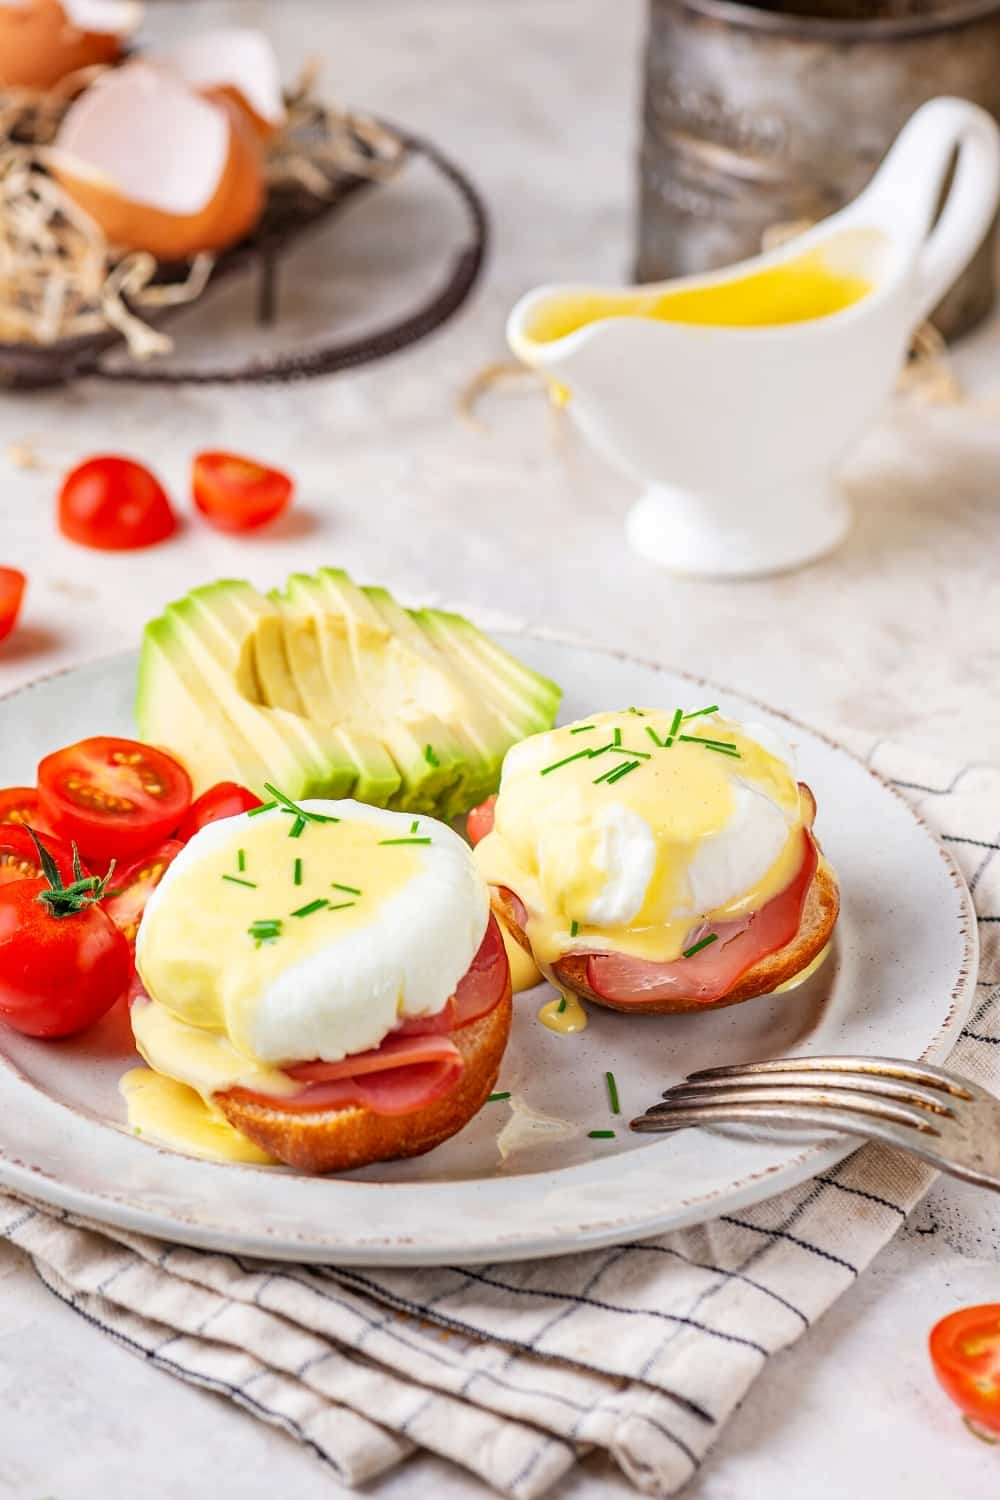 Two eggs benedict on a white plate with sliced tomatoes and a sliced avocado behind it. There is a gravy boat filled with hollandaise sauce behind it.